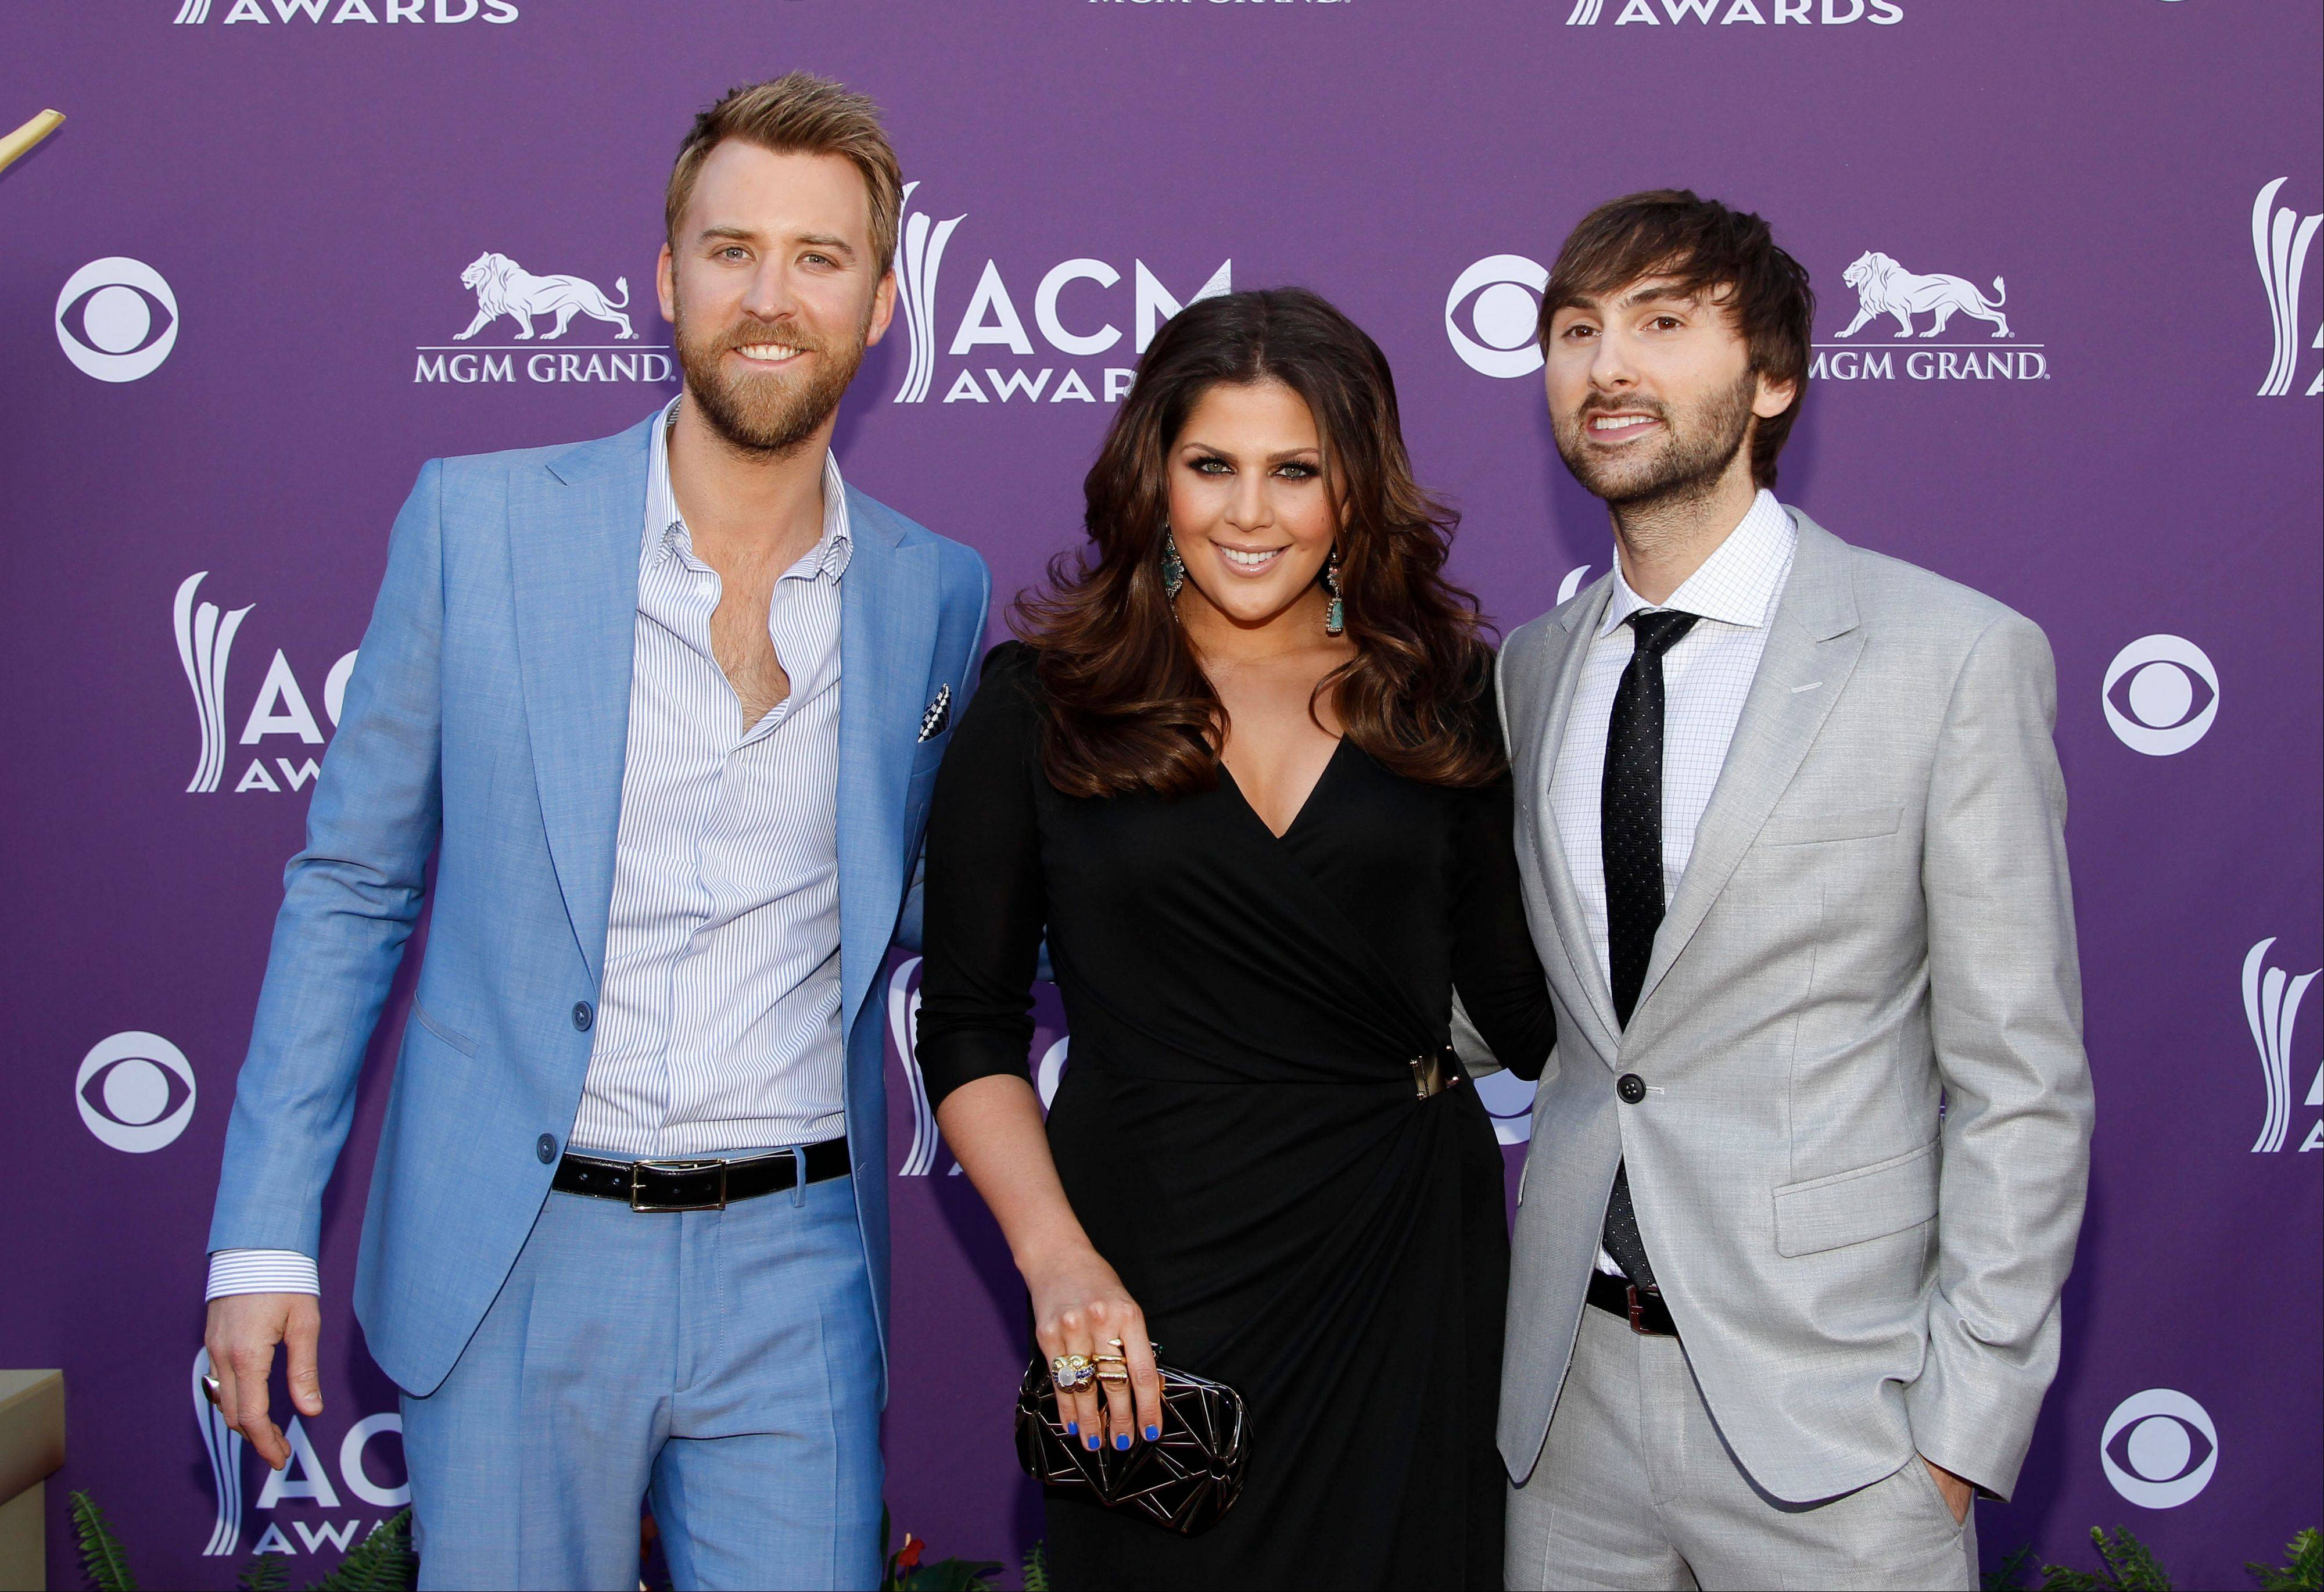 From left, Charles Kelley, Hillary Scott and Dave Haywood, of musical group Lady Antebellum, were up for Vocal Group of the Year.